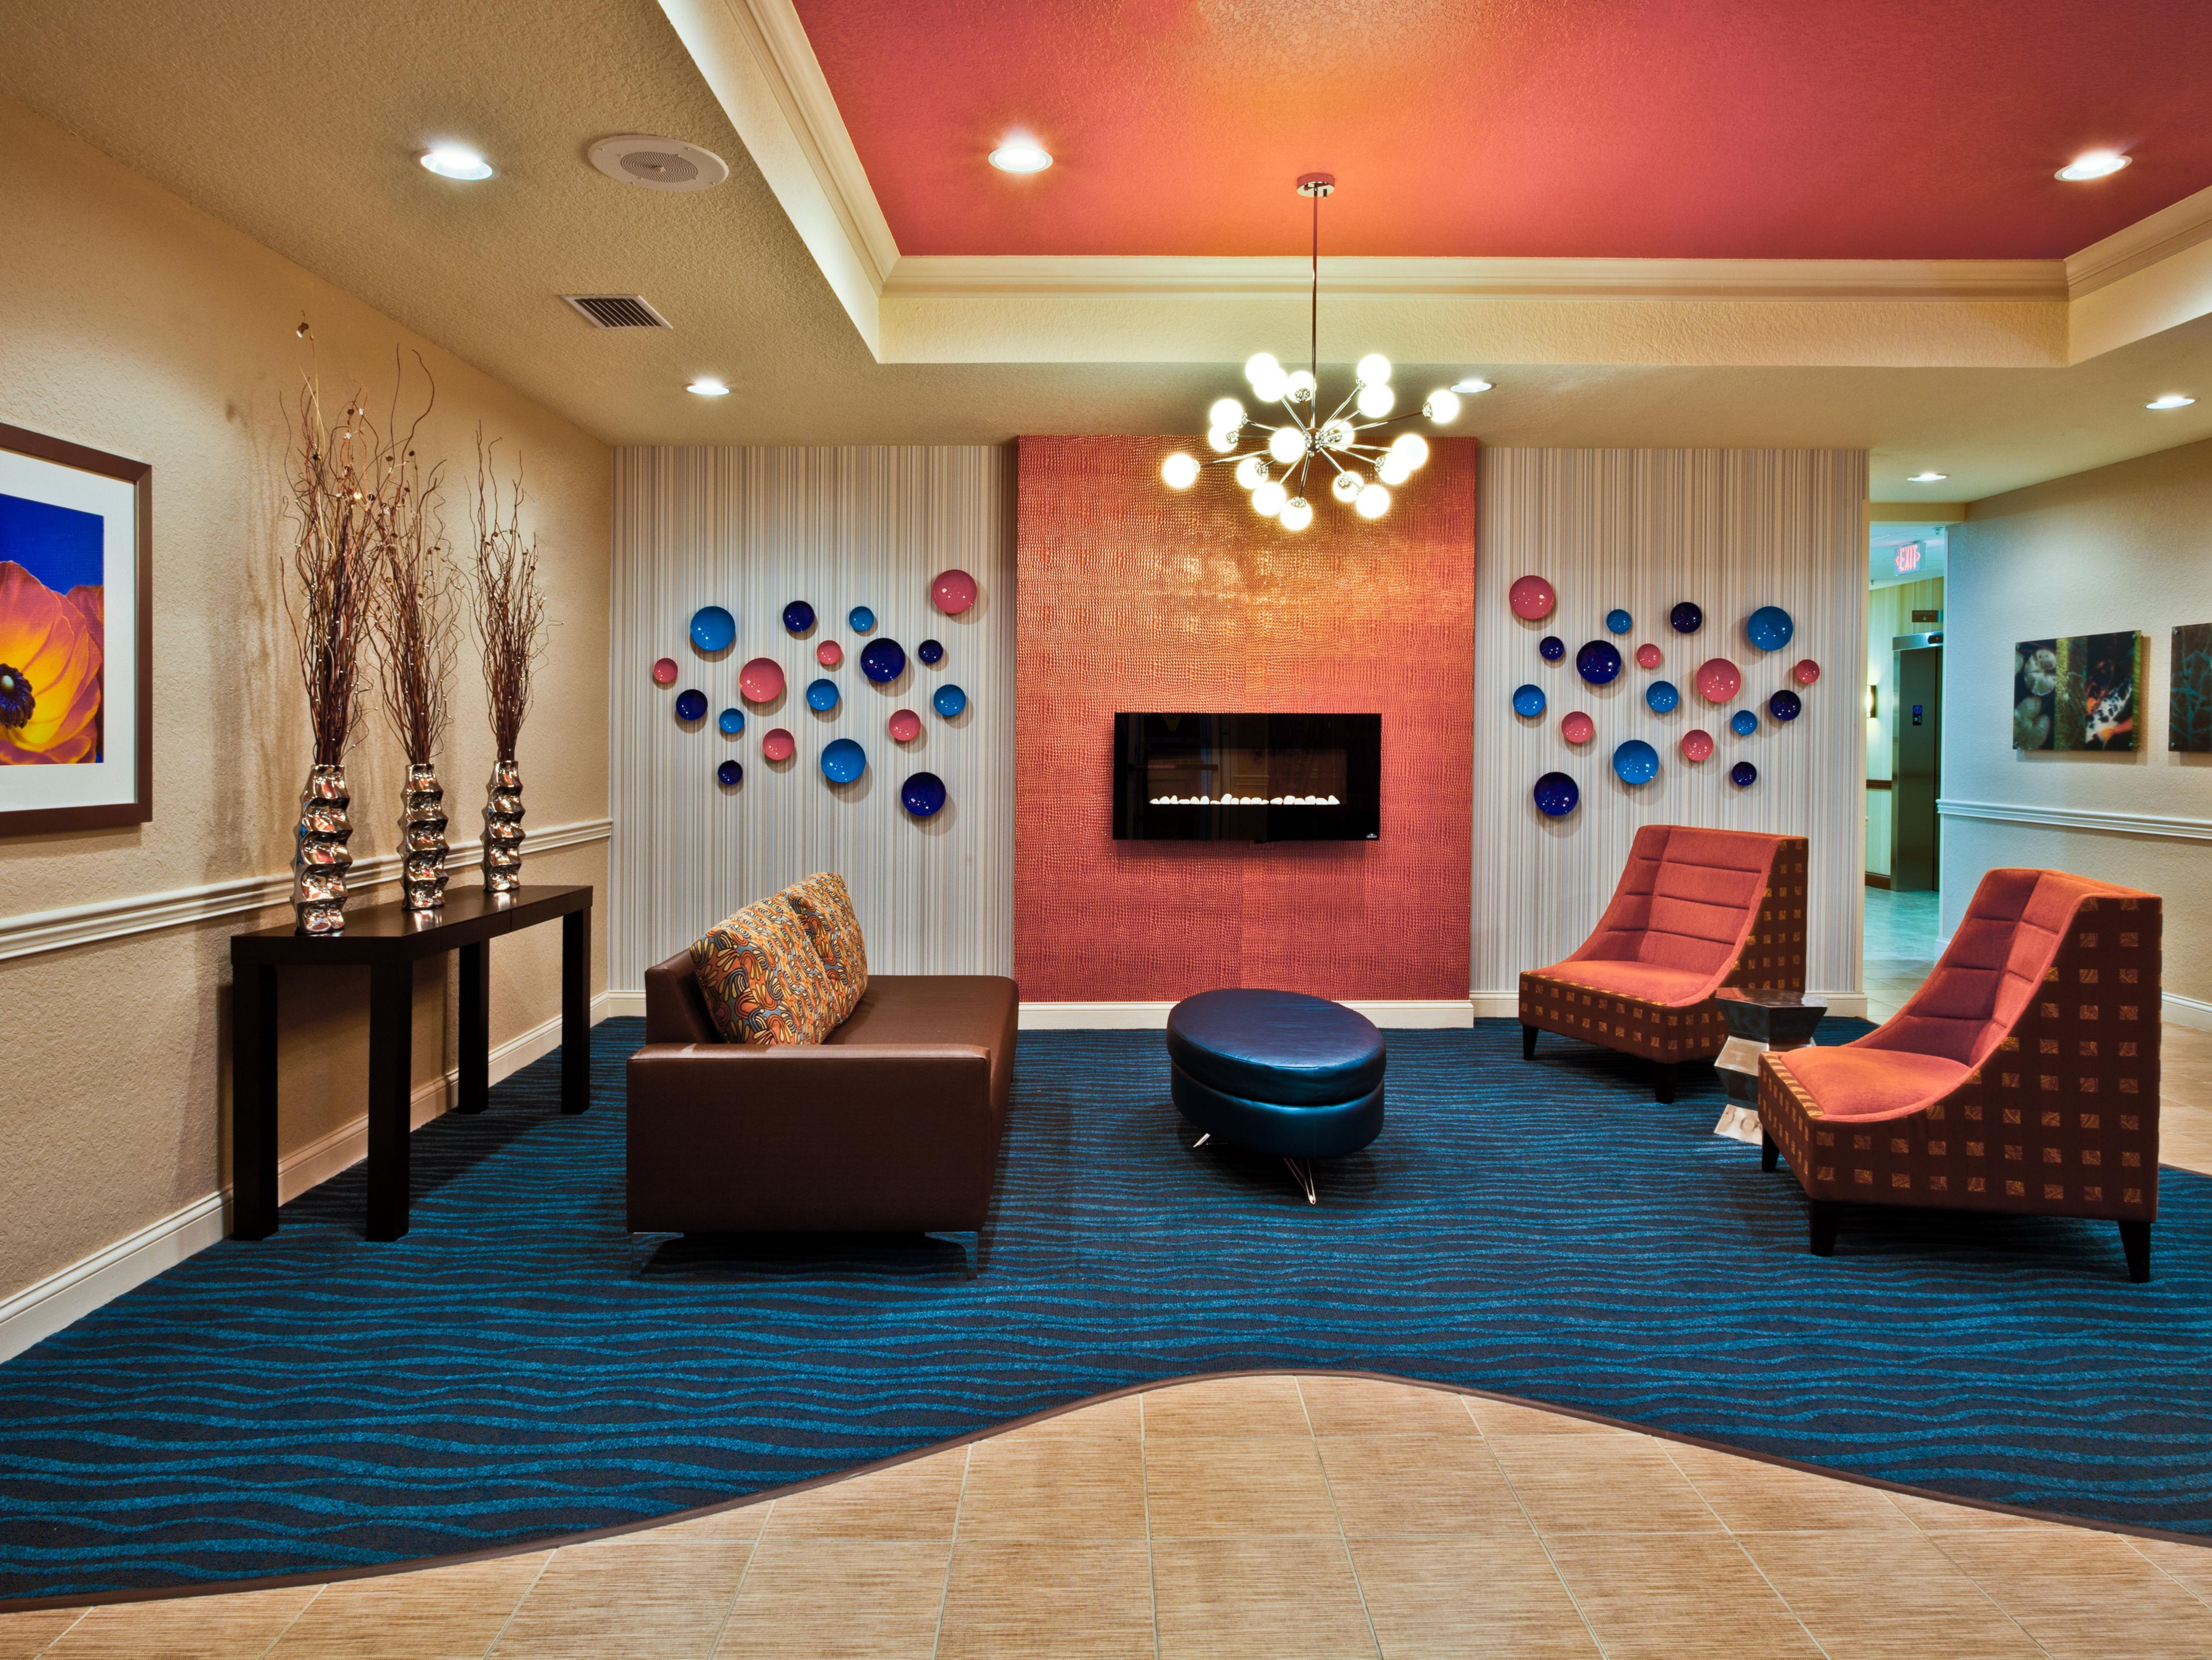 Come see our colorful lobby.